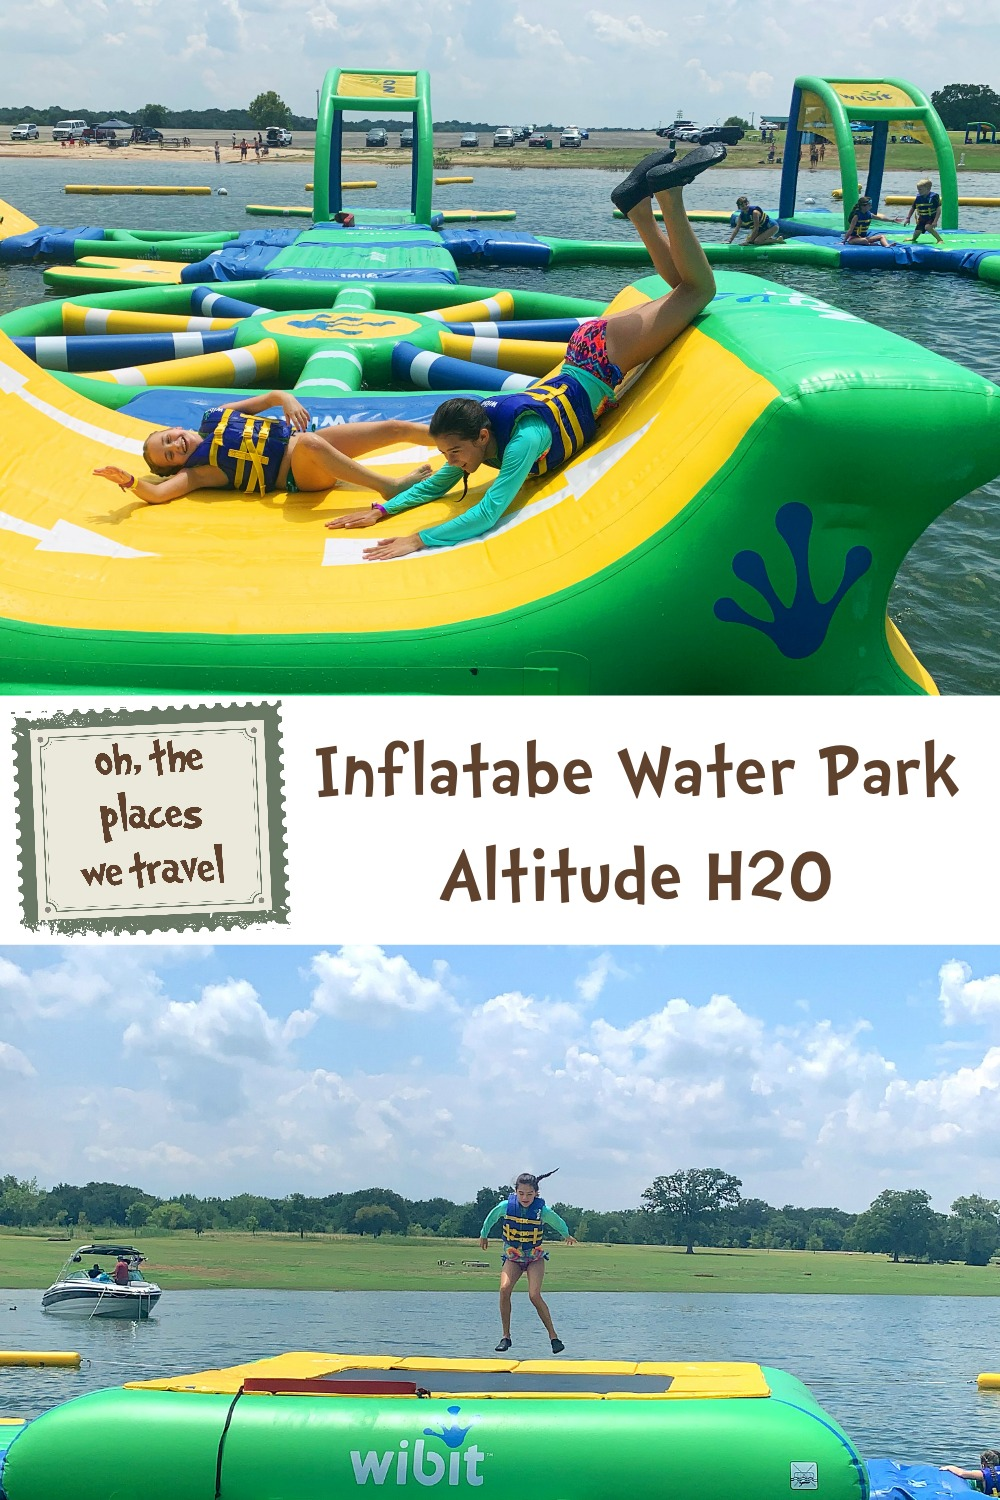 Inflatable Water Park Altitude H2O